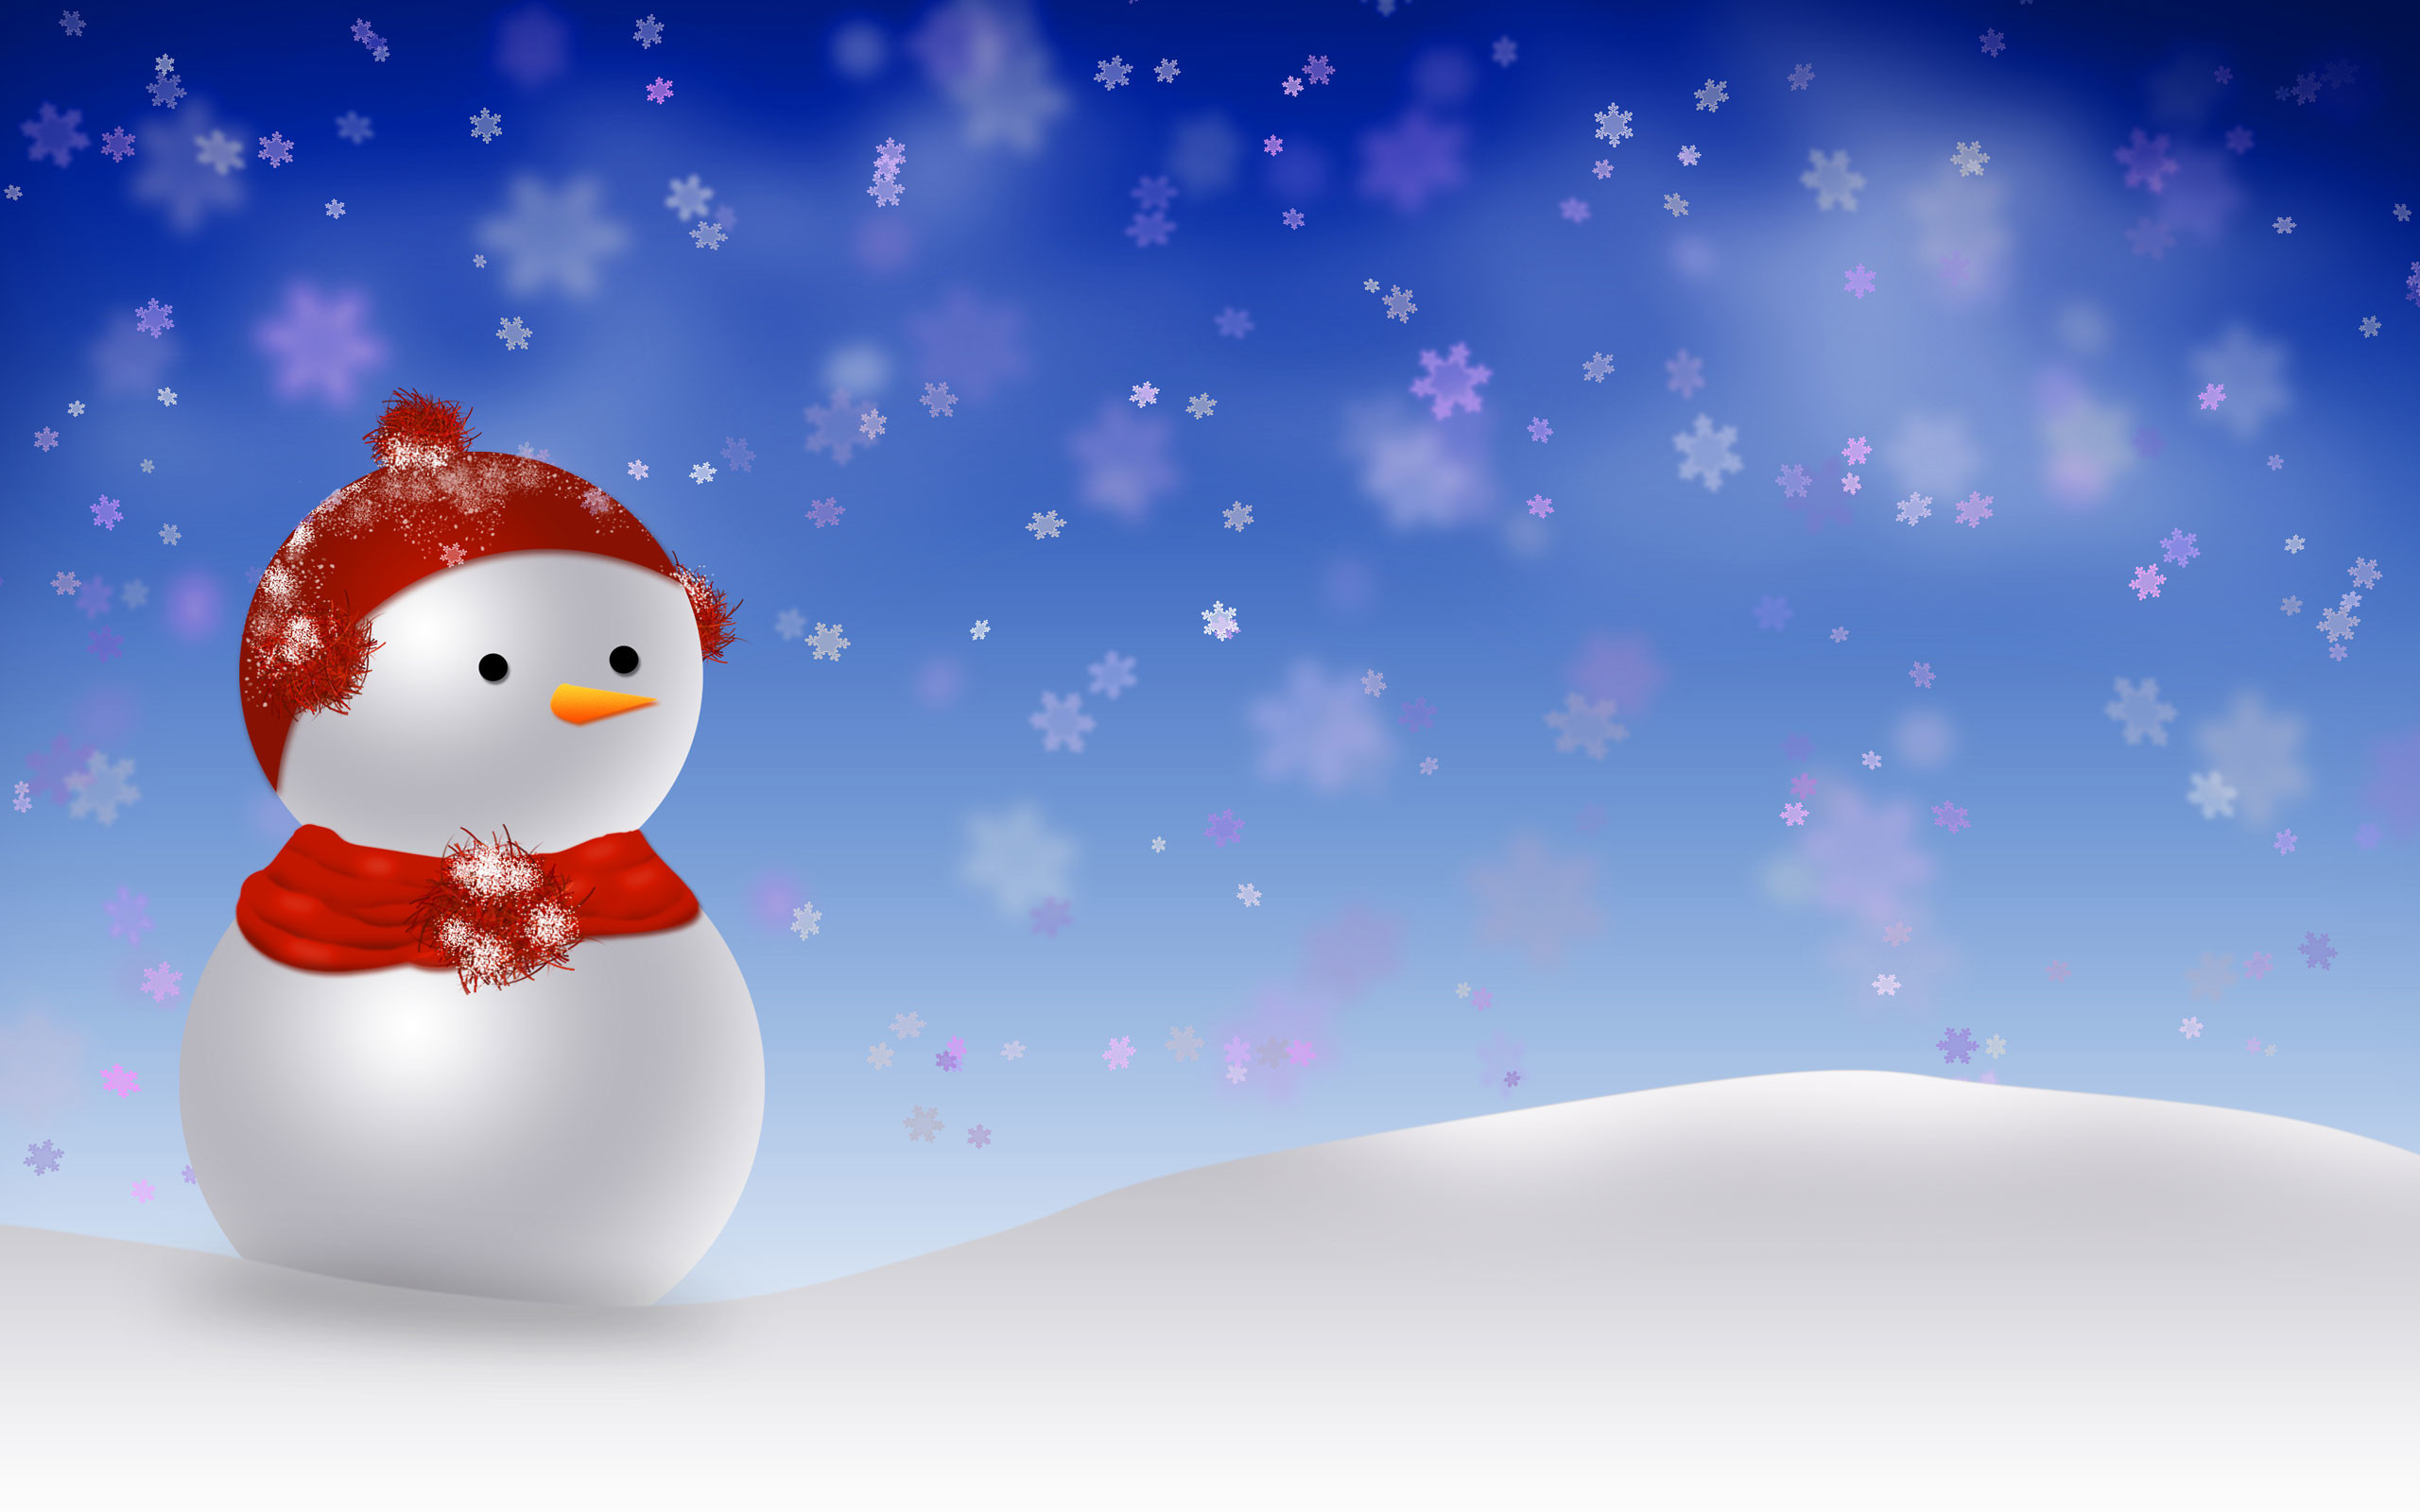 2560x1600 Cute Christmas Backgrounds | Free Cute Christmas Desktop Backgrounds .